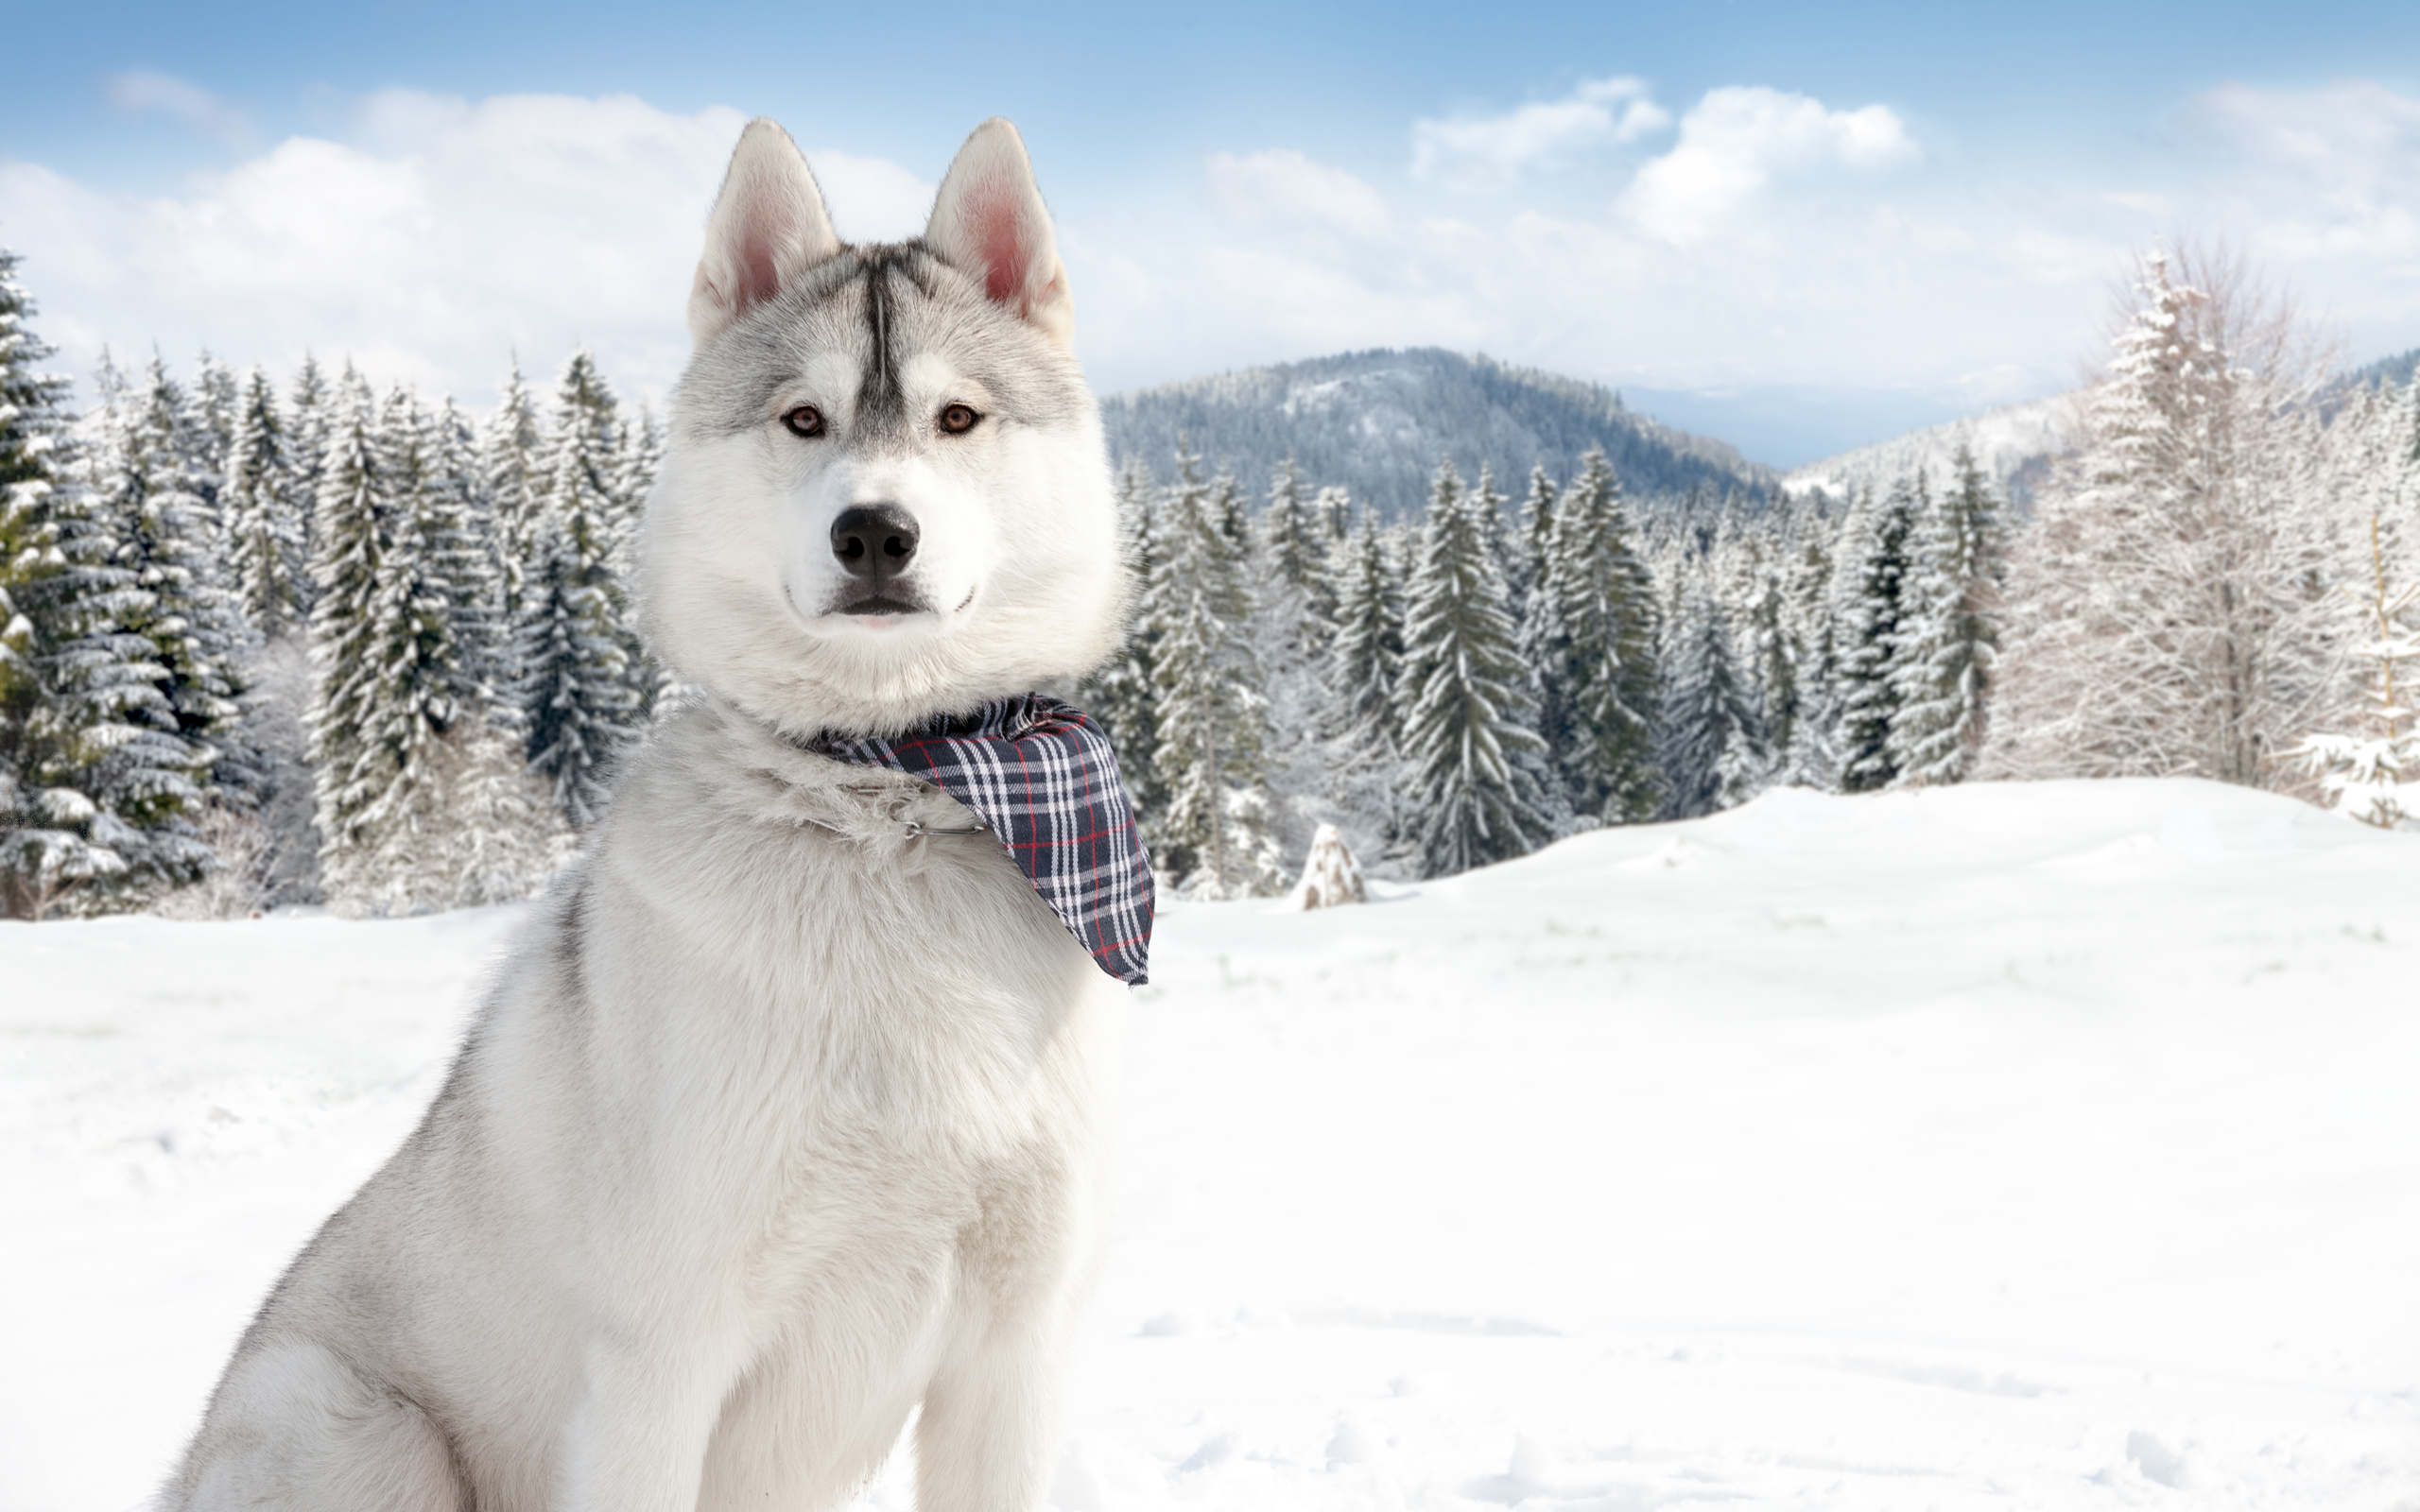 nature winter snow dogs wallpaper background 2560x1600